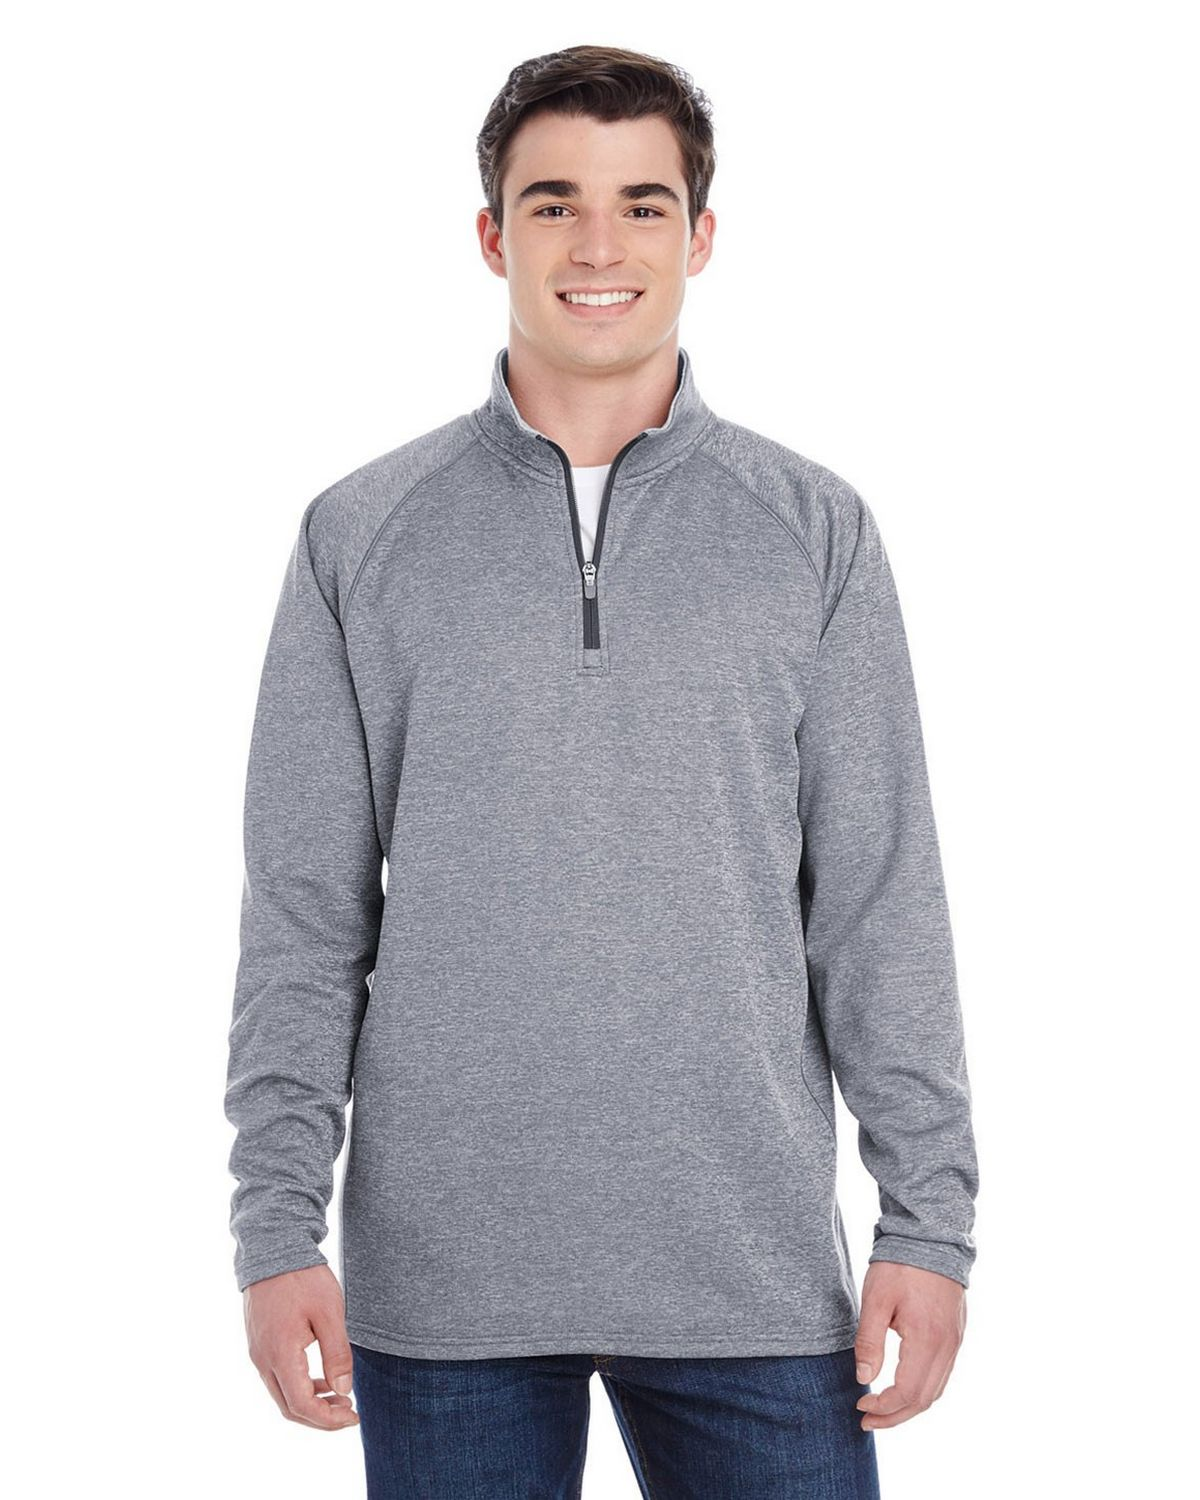 Champion S230 Performance Colorblock Quarter Zip Pullover - Slate Gray Heather - L S230